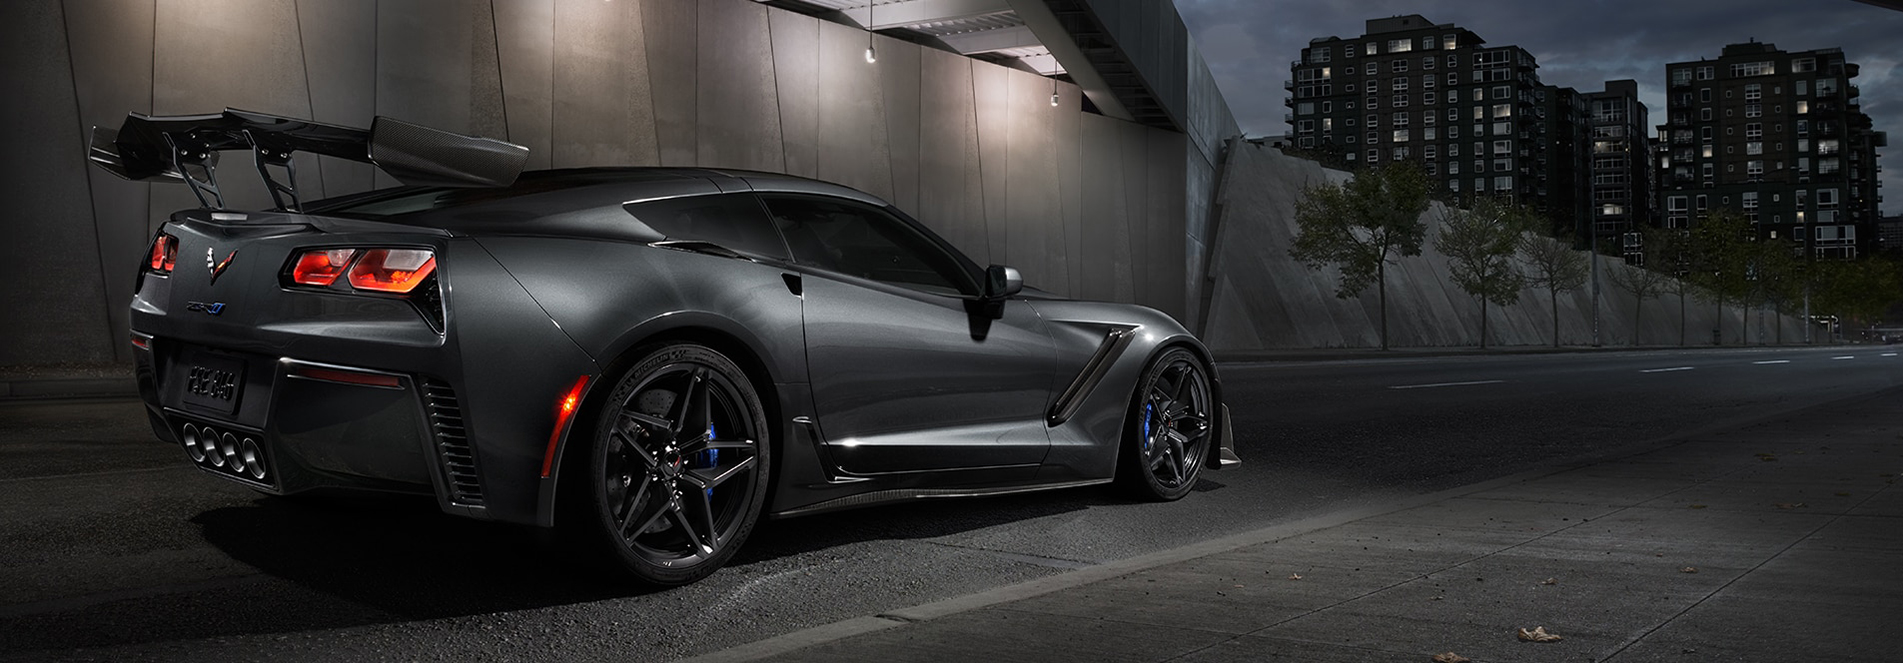 Corvette Stingray Top Speed >> New Chevy Corvette C7 Specs Hendrick Corvette Center In Buford